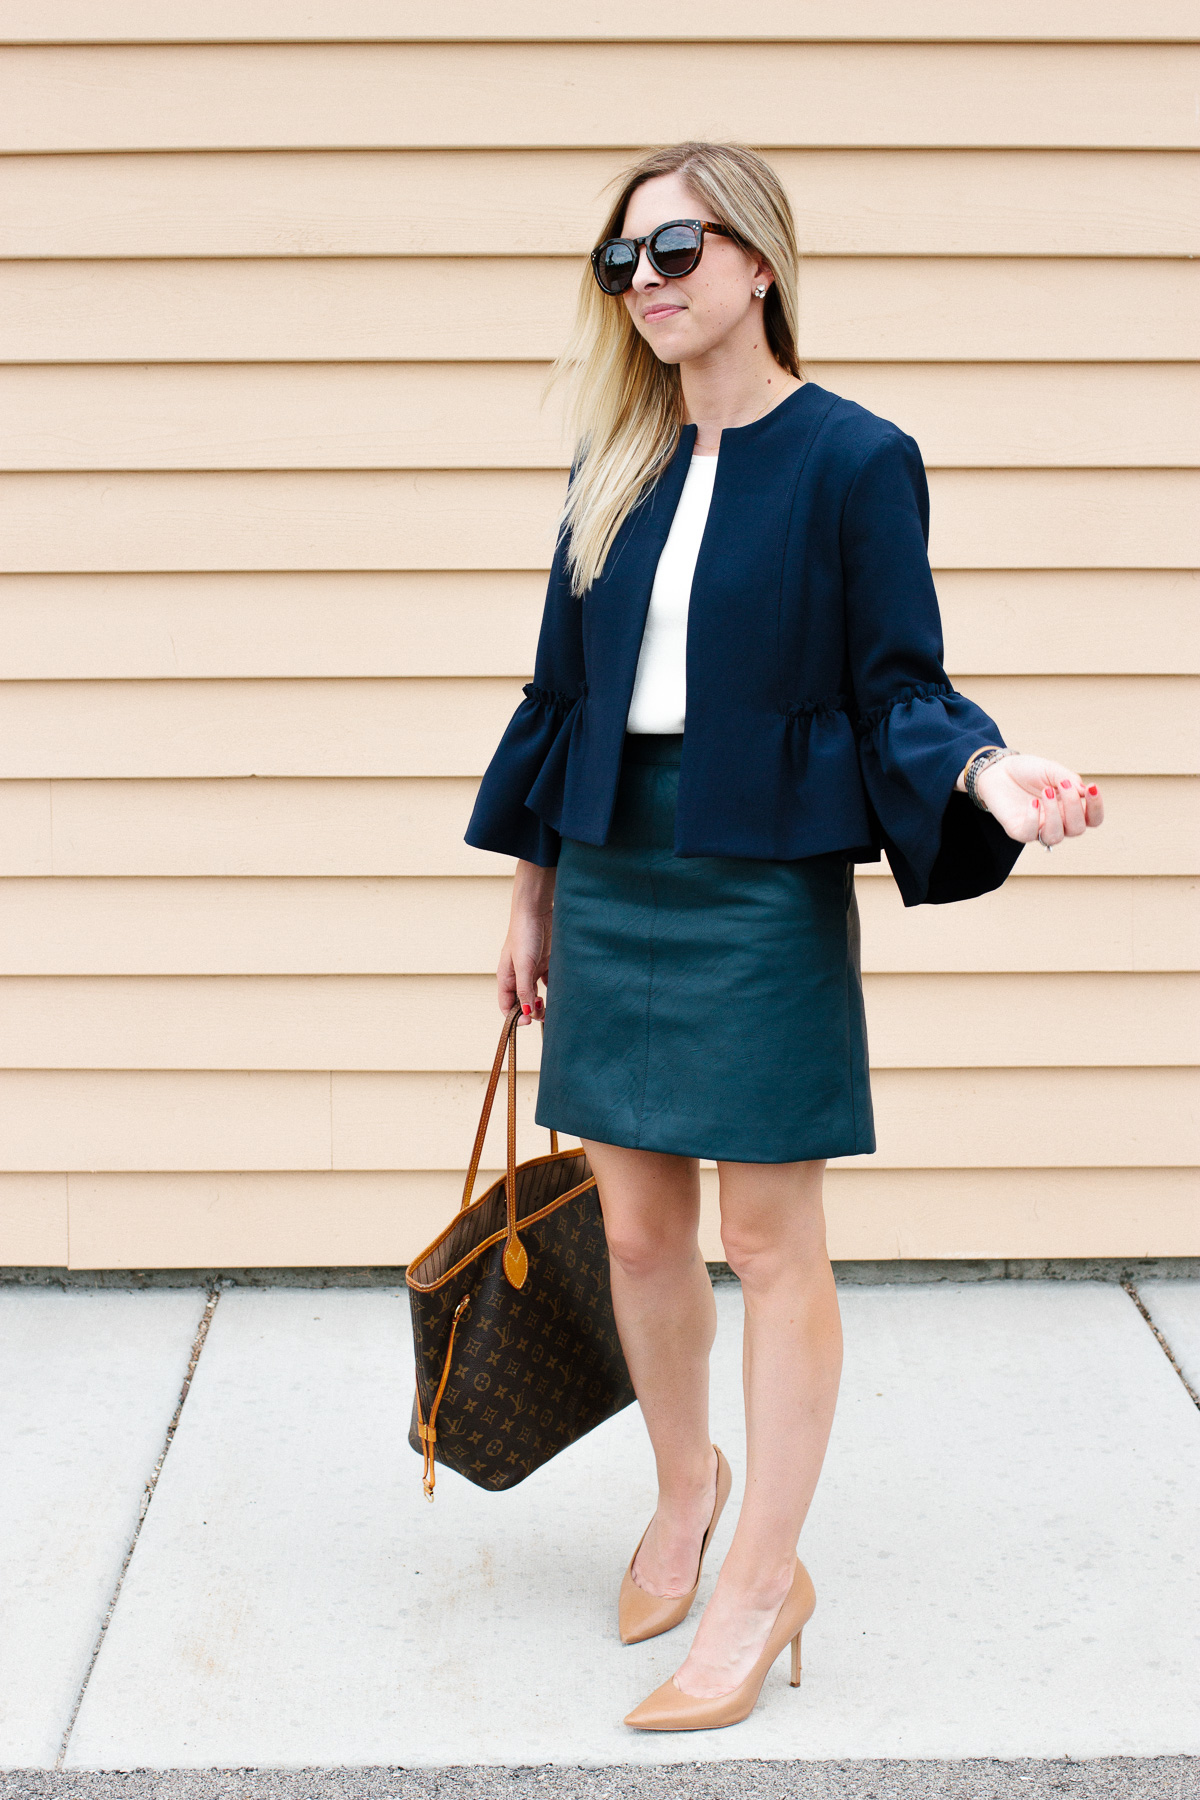 How to Style a Faux Leather Skirt for Work - Fifth & Rose